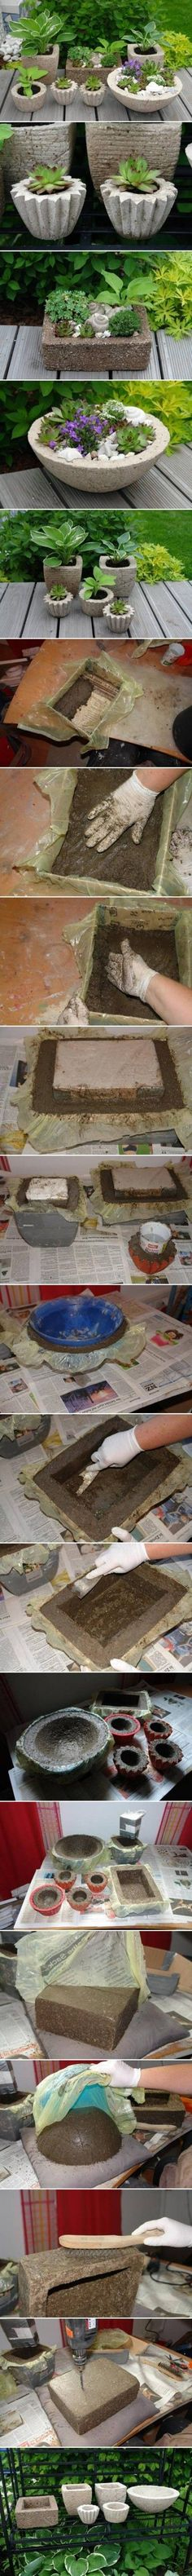 How to make Variety of Cement Planters step by step DIY tutorial picture instructions 400x5355 How to make Variety of Cement Planters step b...